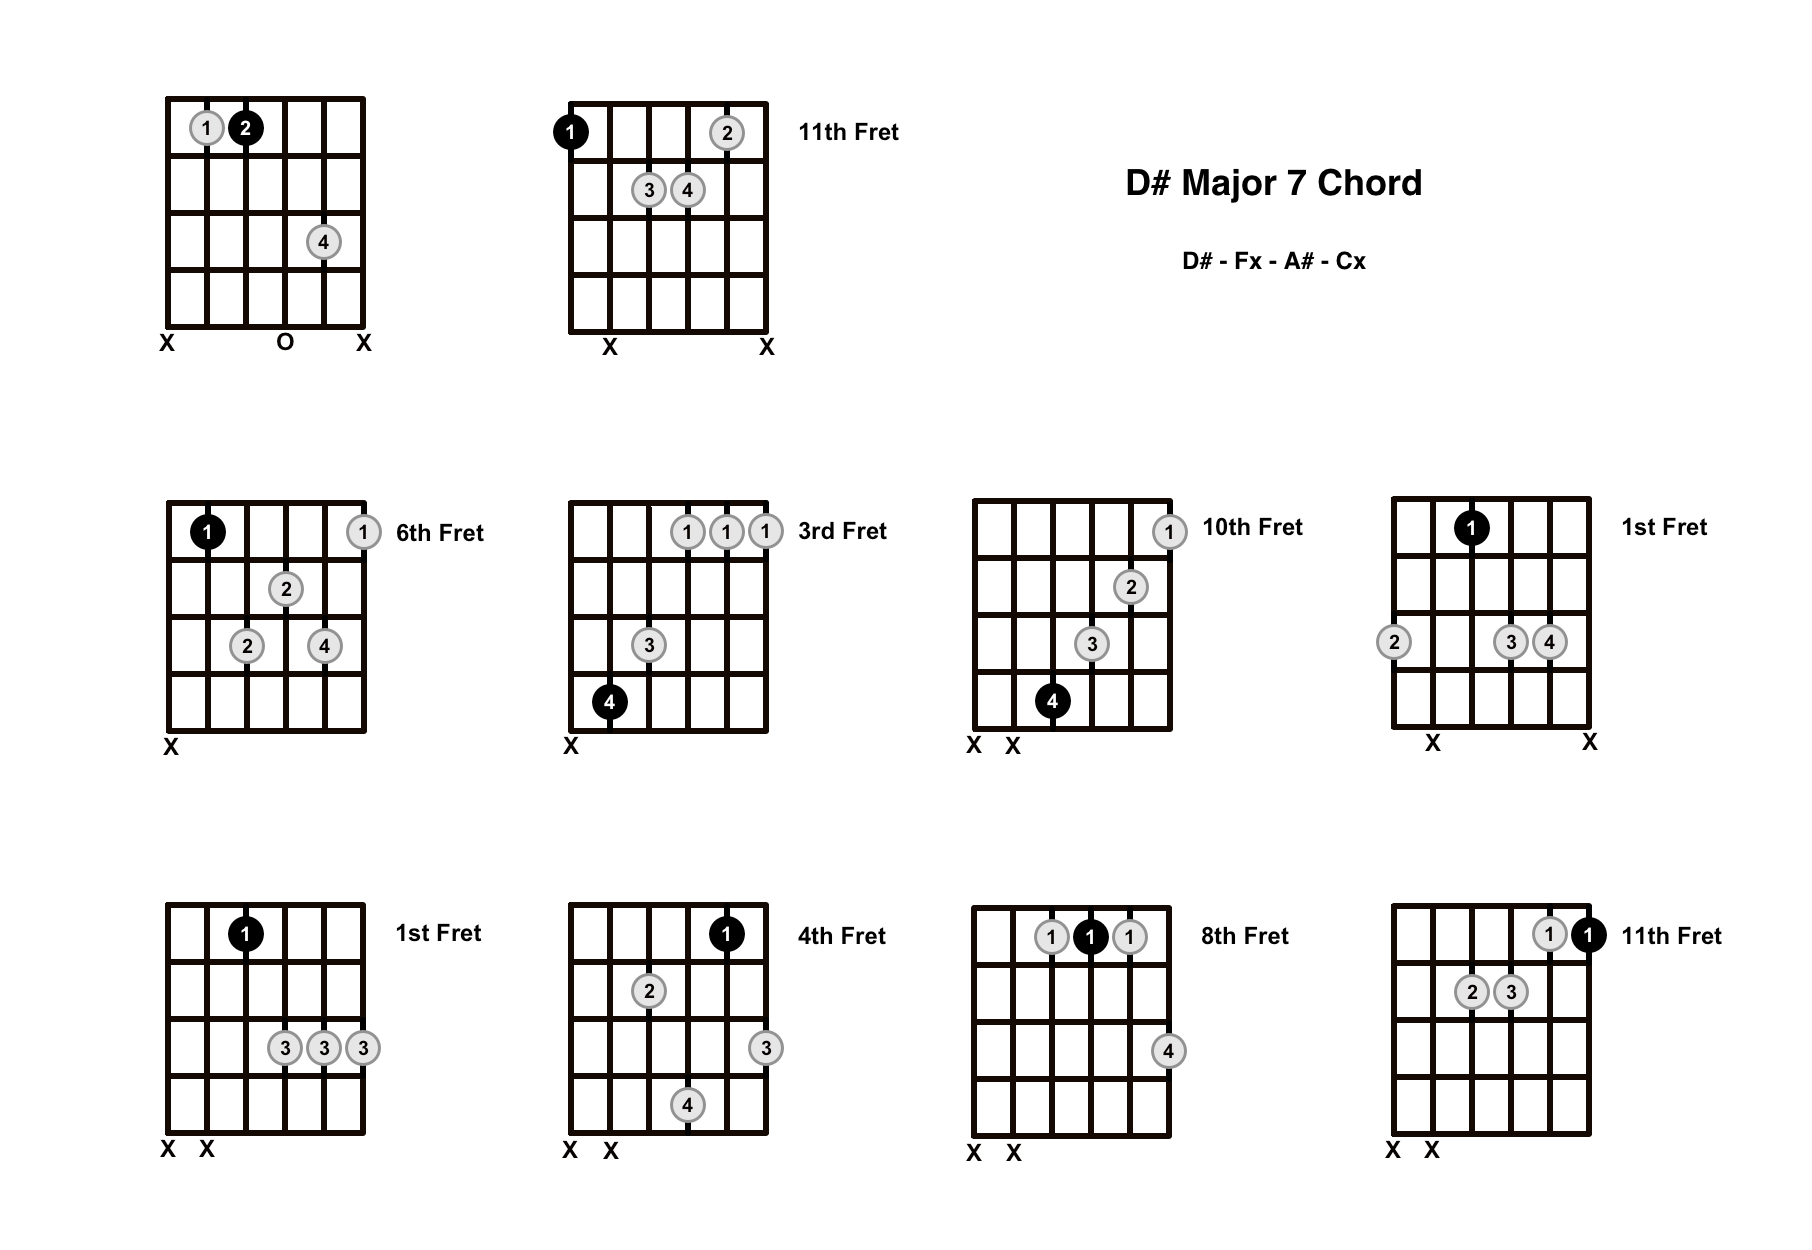 D Sharp Major 7 Chord On The Guitar (D# Maj 7) – Diagrams, Finger Positions and Theory